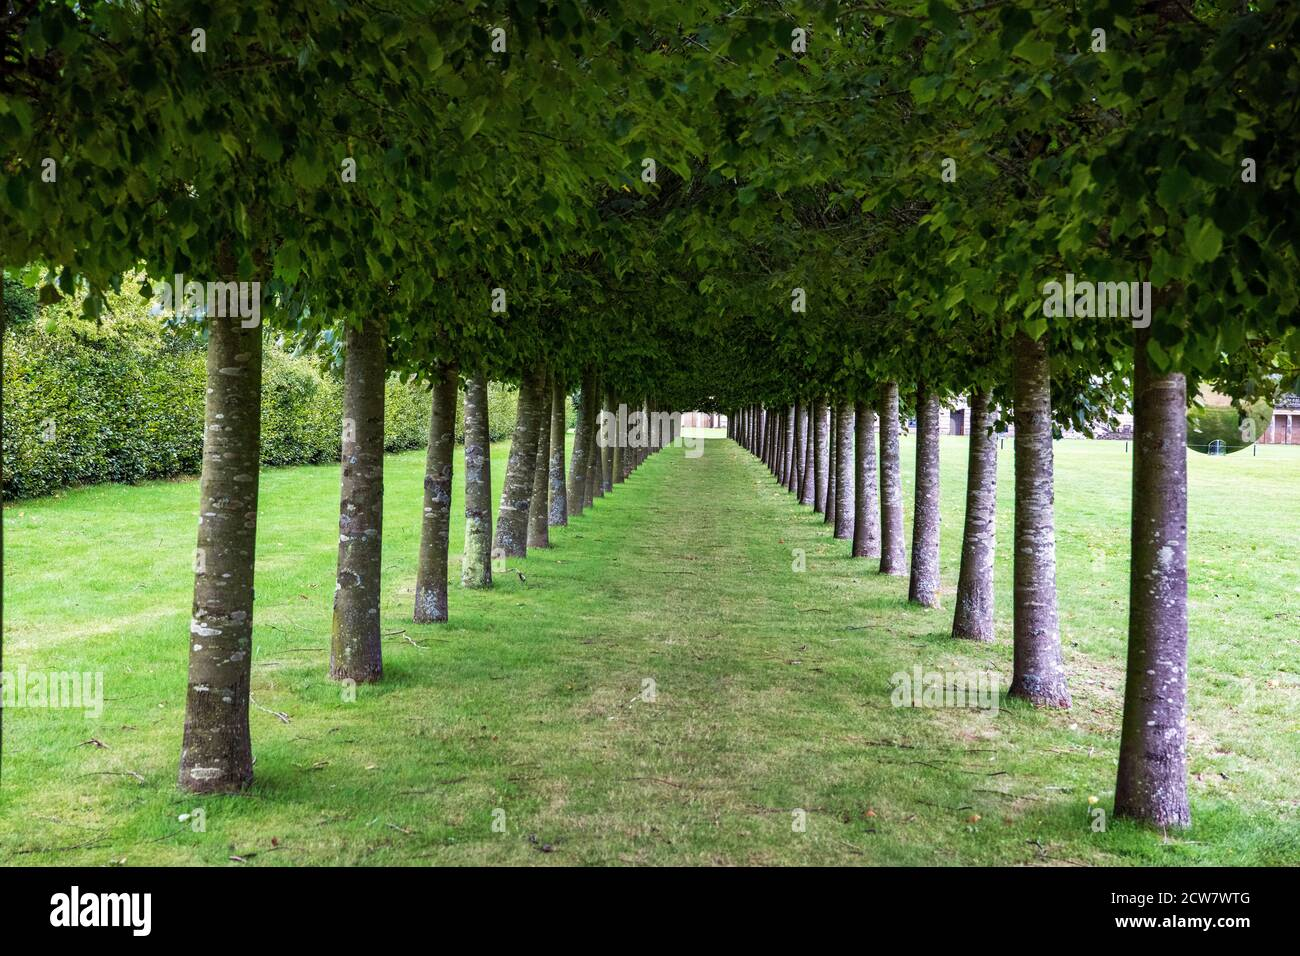 Rangée d'arbres Houghton Hall North Norfolk, Angleterre Banque D'Images